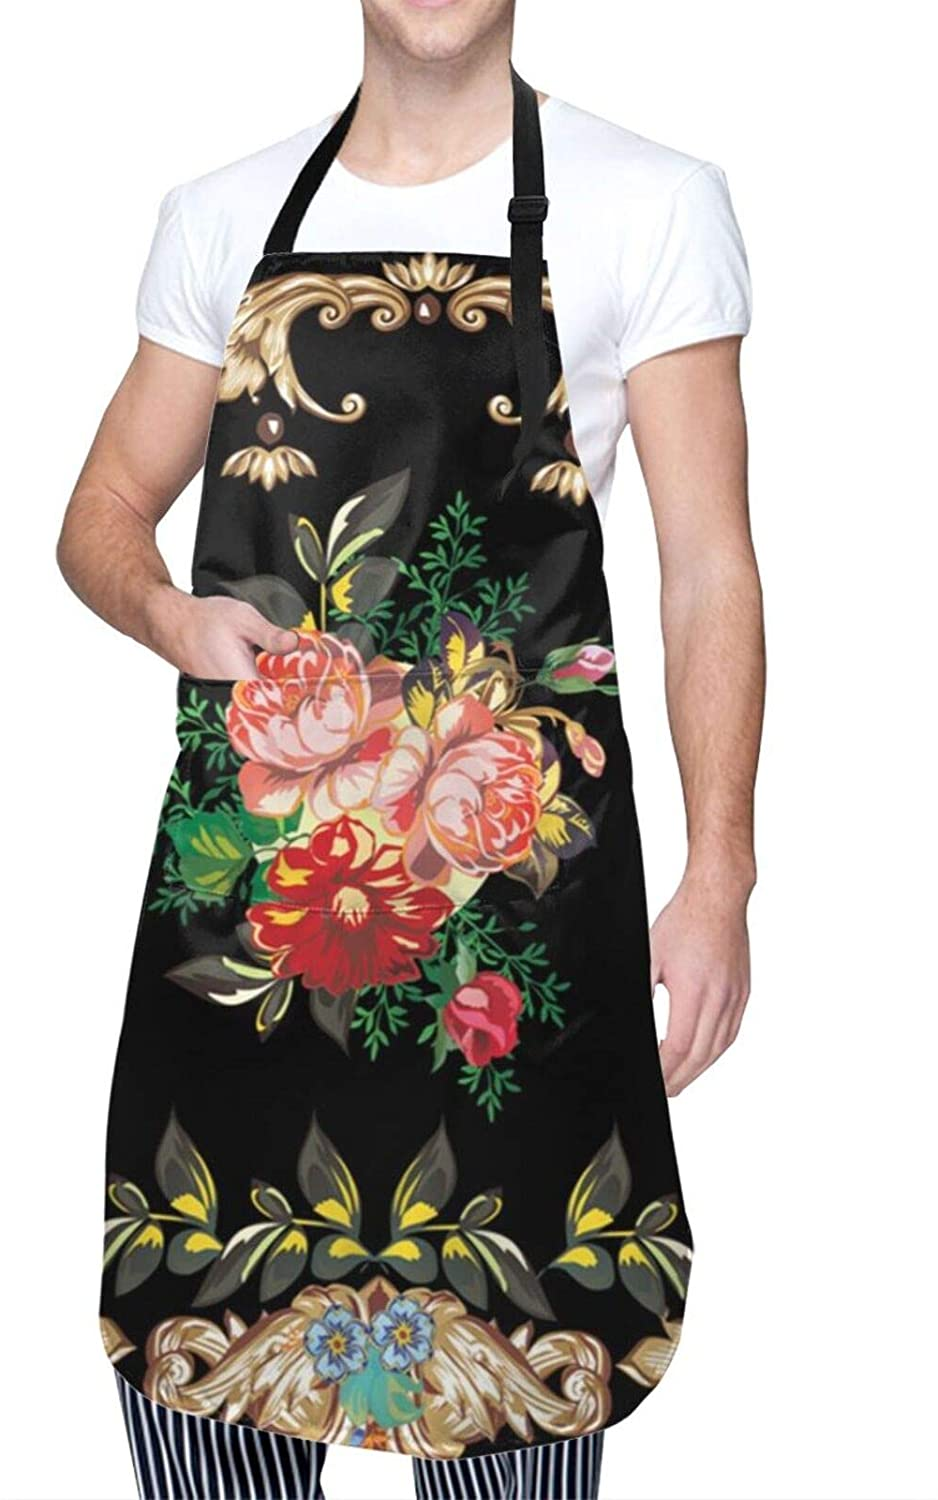 Cooking Apron Illustration With Rose Flower Decoration On Black Background Kitchen Apron Bib Apron Custom Aprons For Baking Bbq Aprons Adjustable Neck For Men Women Waterproof 28.3x25.6 Inches